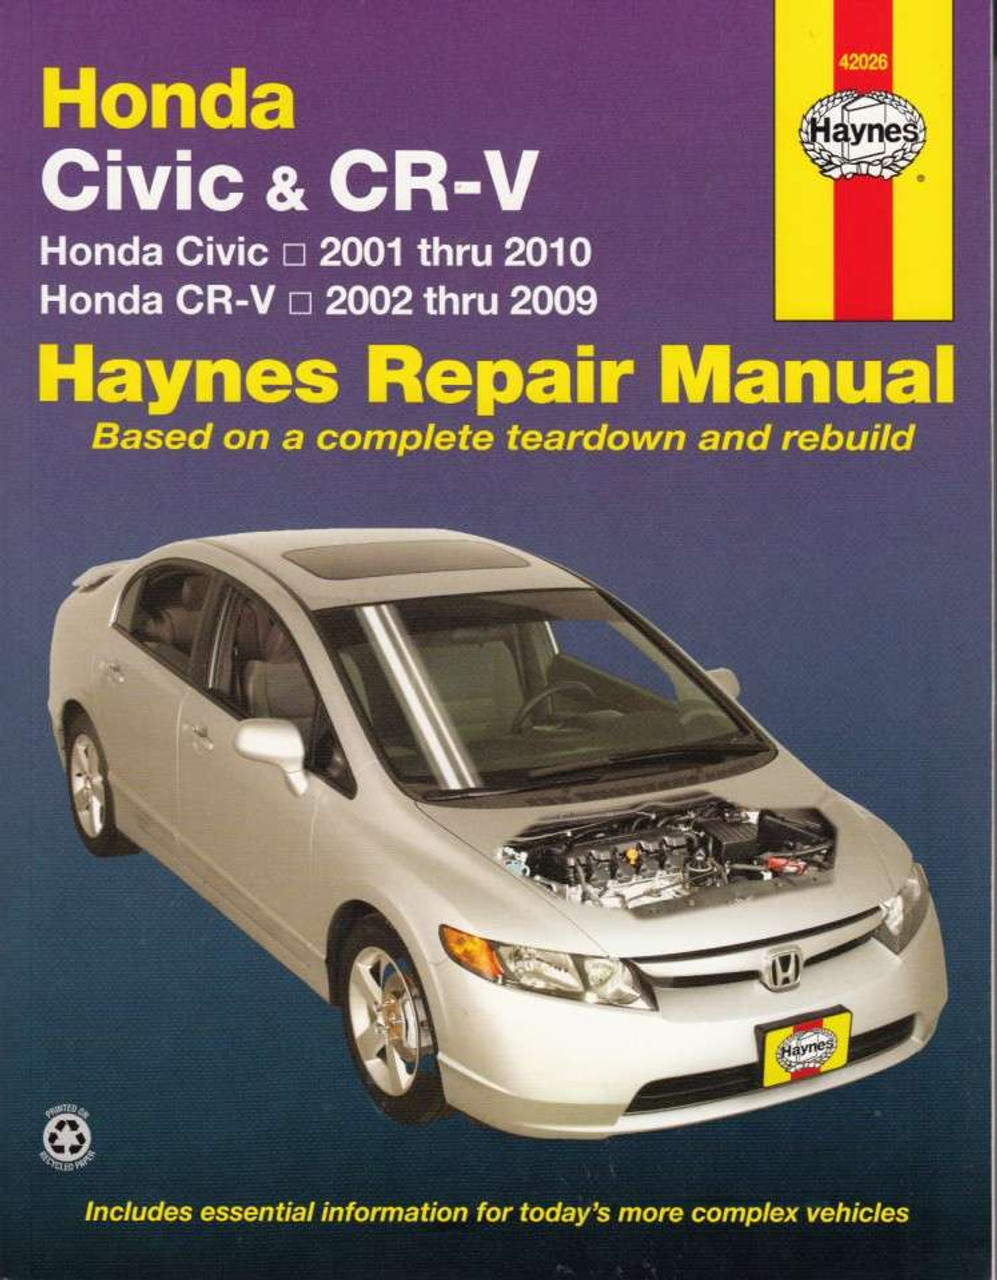 2003 Honda Civic Exhaust System Diagram Wiring Diagram Photos For